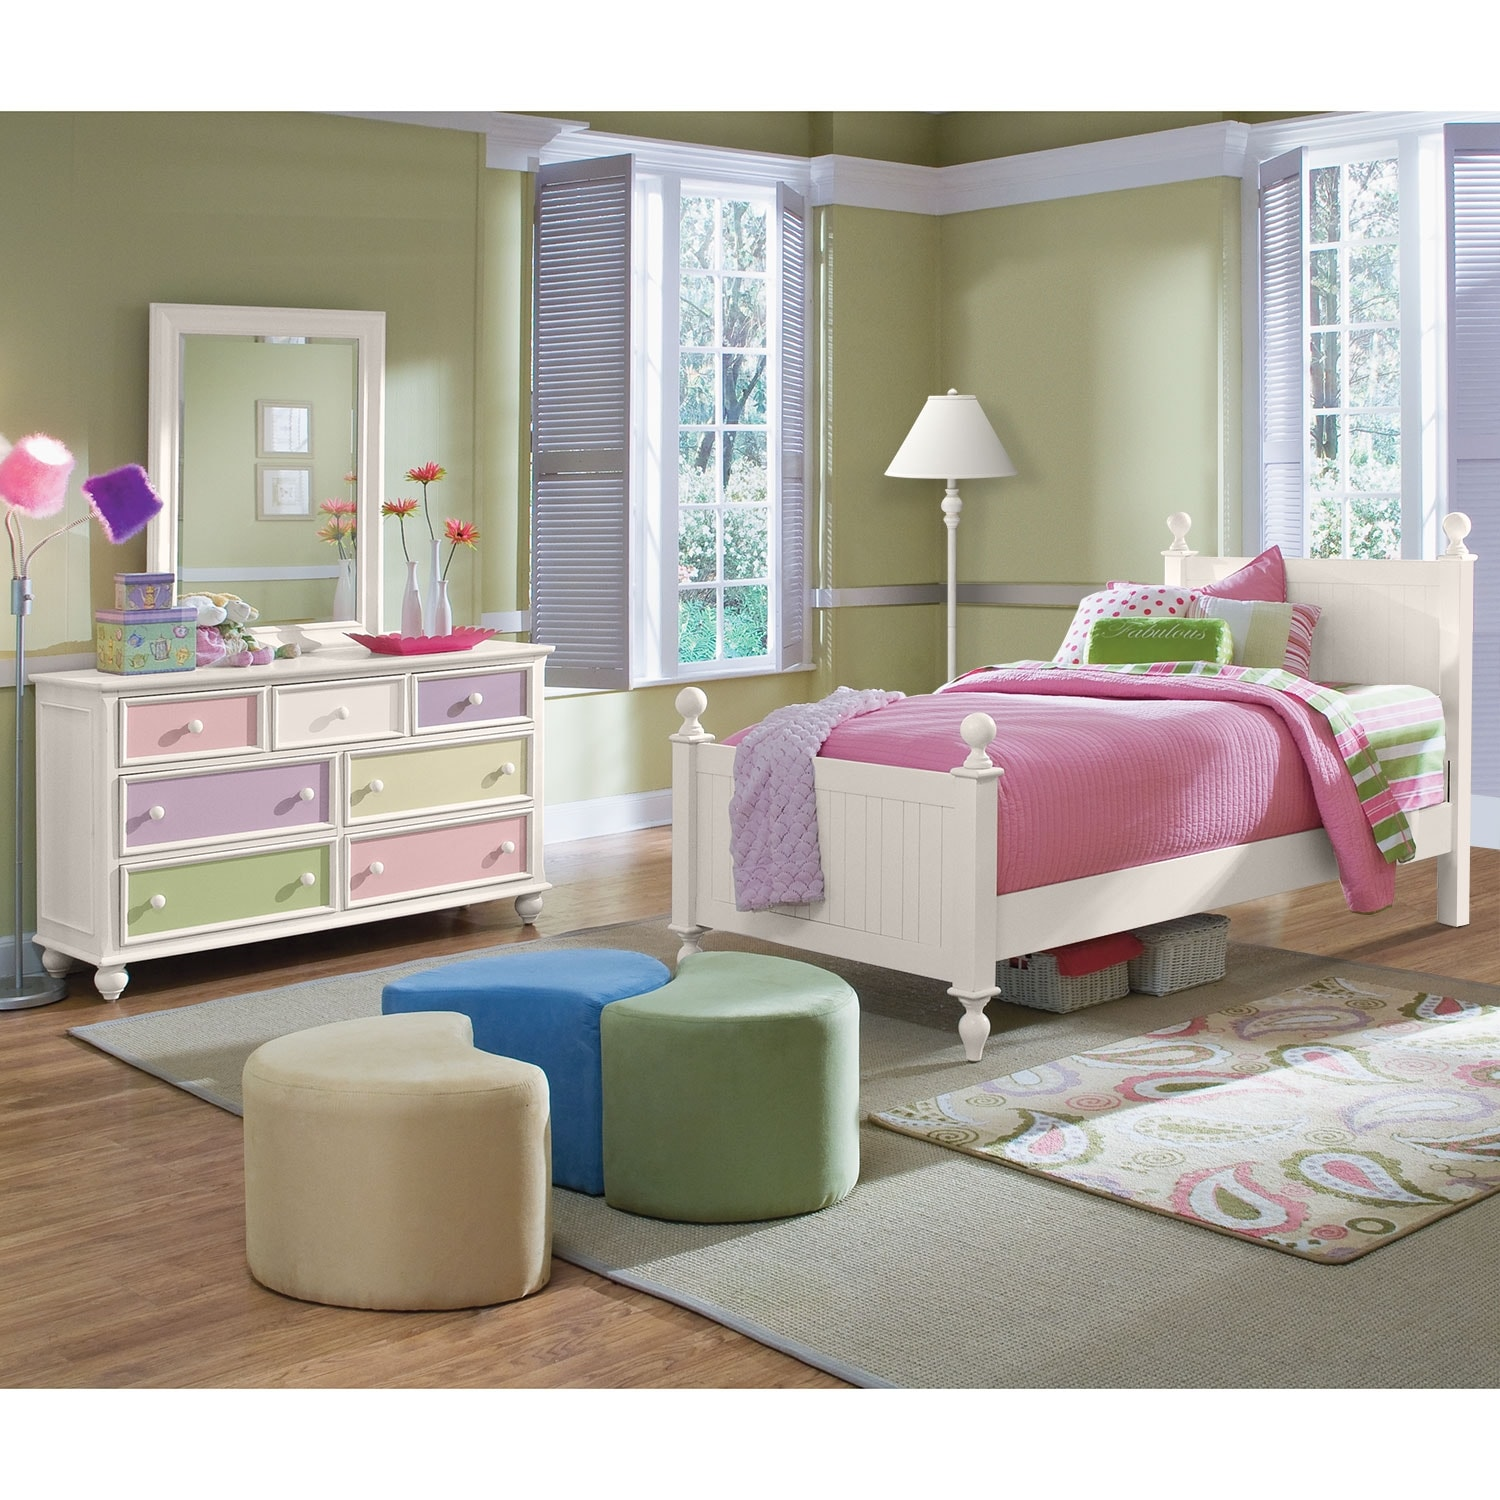 Kids Furniture - Colorworks 5-Piece Twin Bedroom Set - White